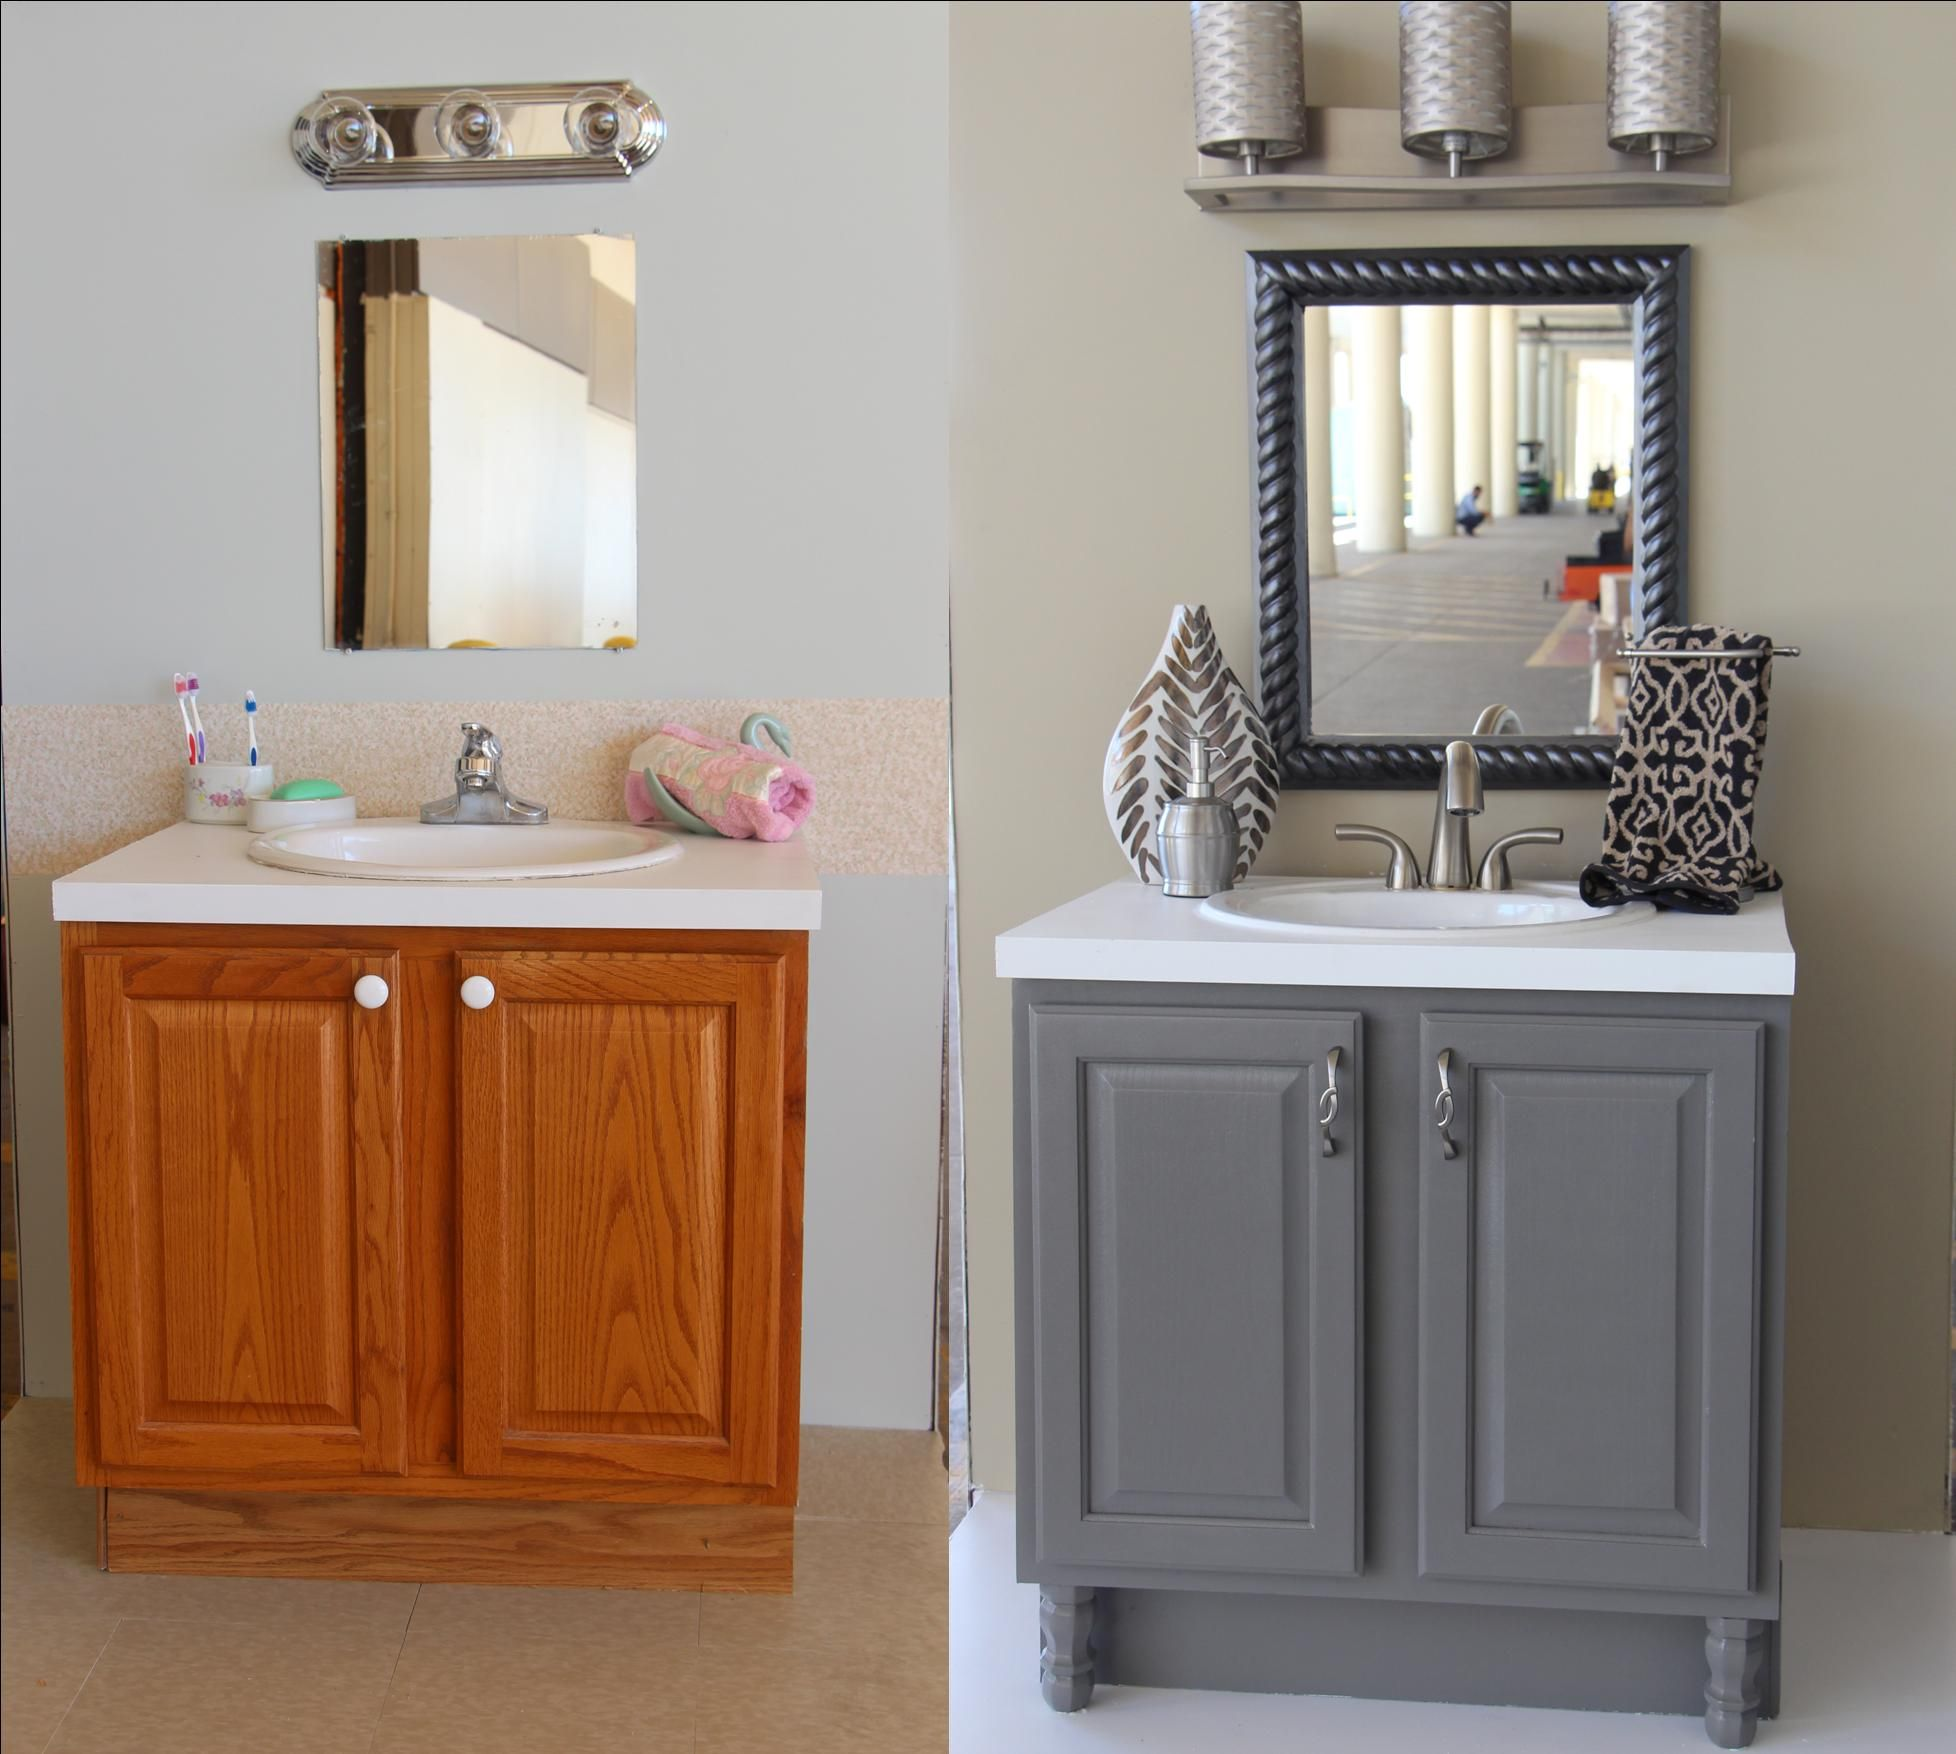 Bathroom updates you can do this weekend bath diy for Updating bathroom ideas